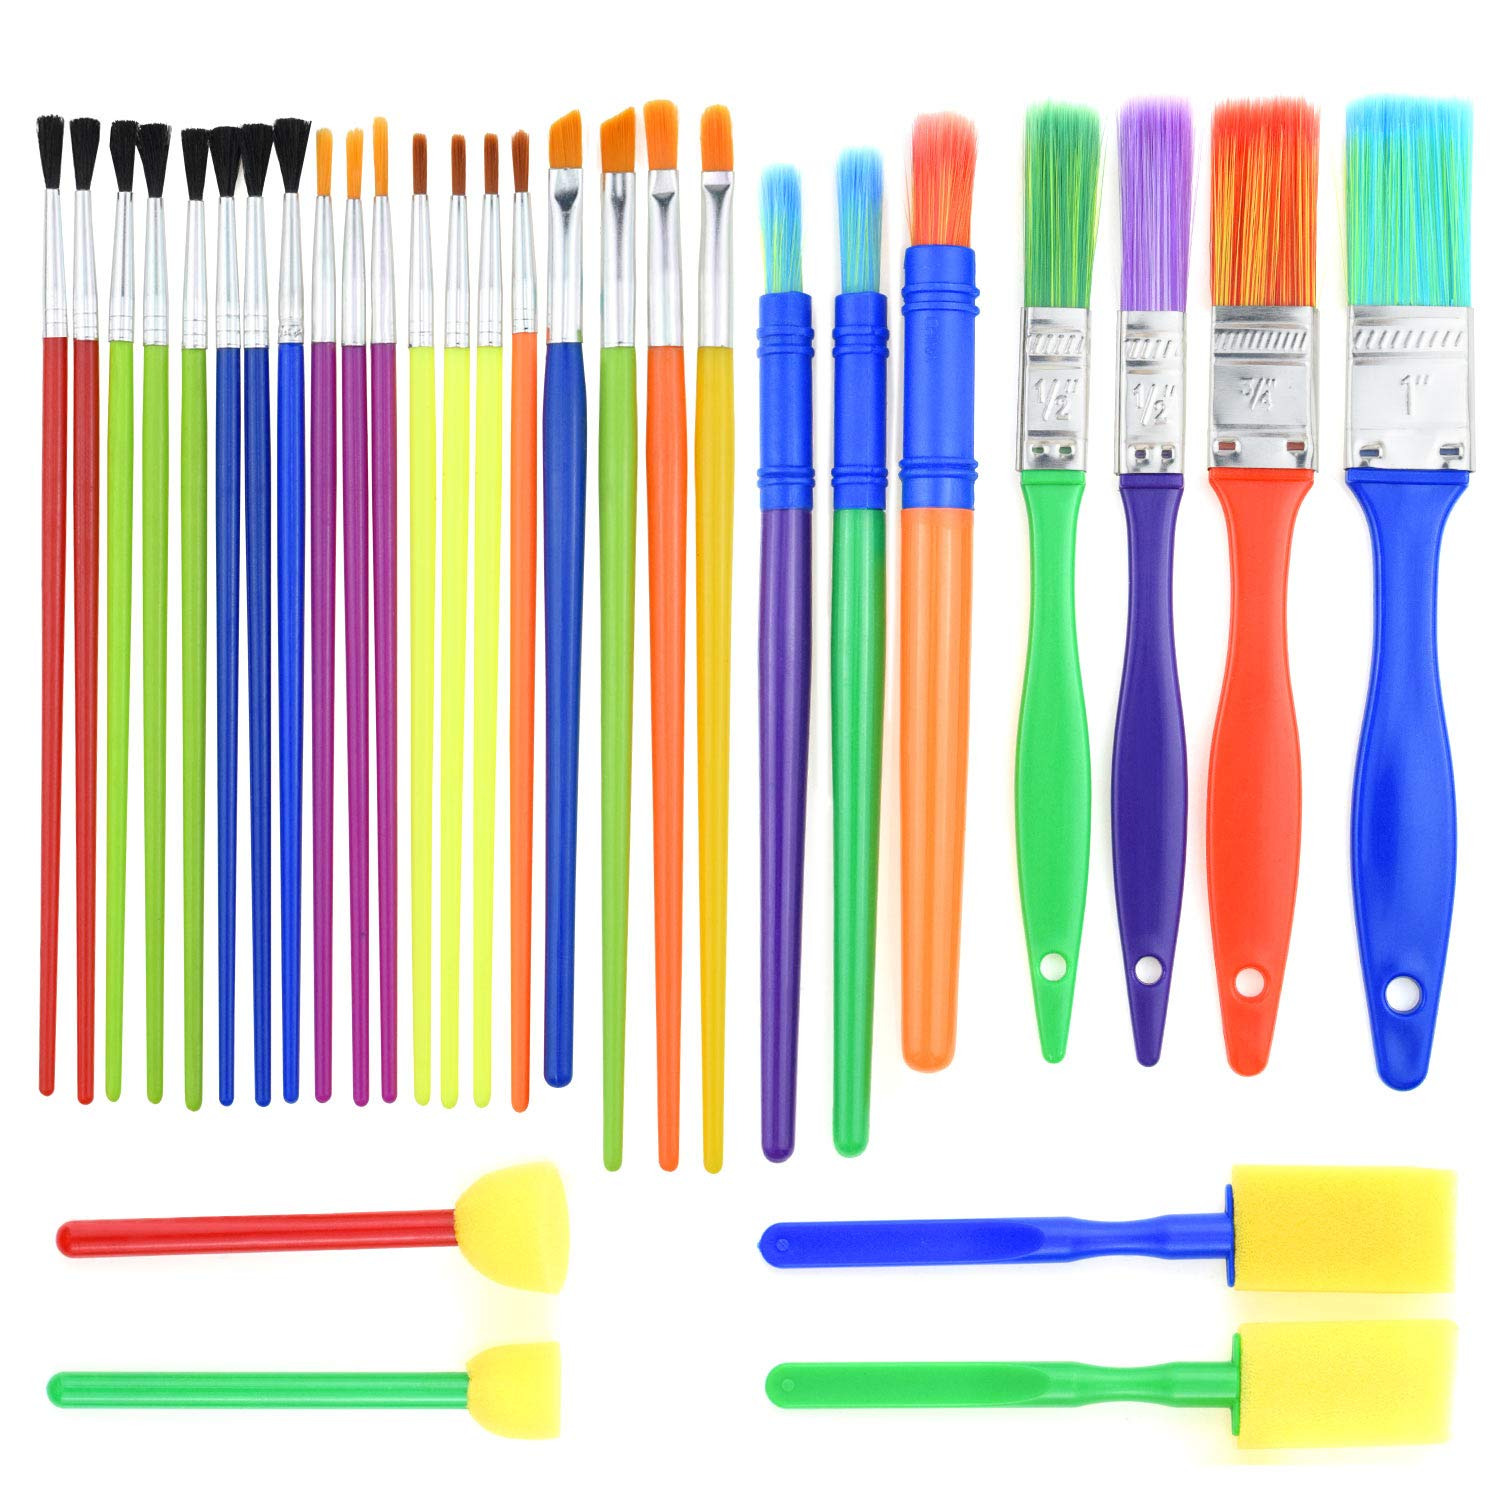 BTNOW 30 Pieces Kids Paint Brushes Colorful Artist Paint Brush Set Assorted Sizes Watercolor, Oil, Acrylic & Tempra Paints More 4336960884